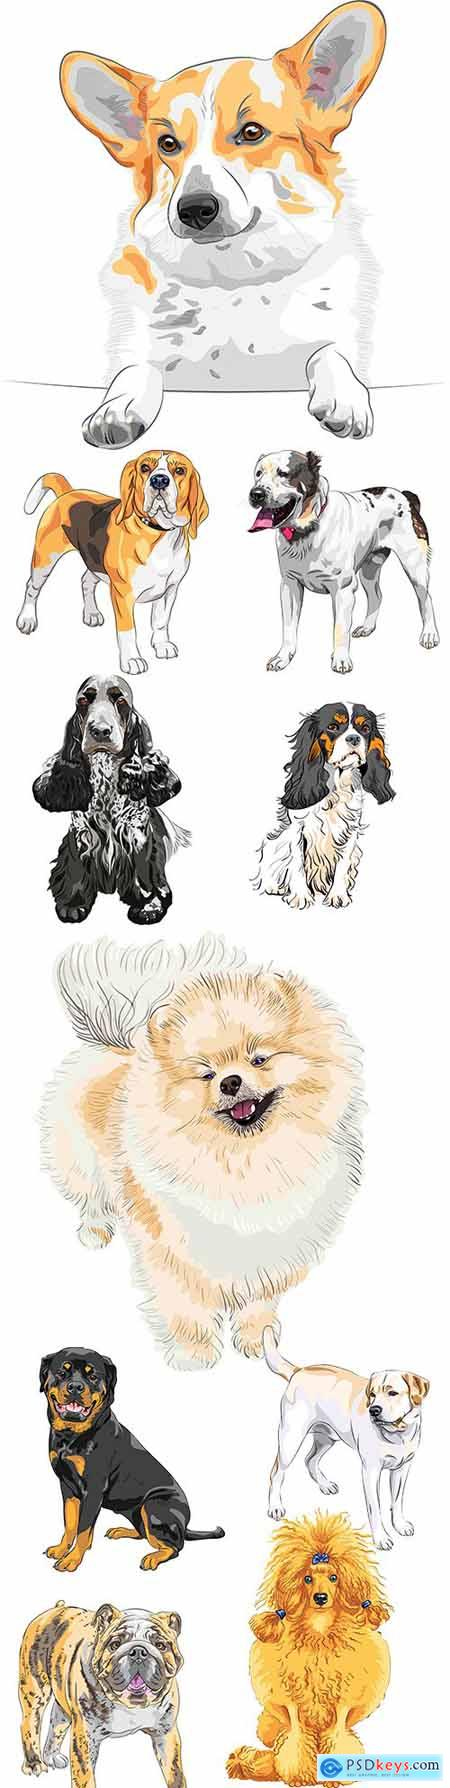 Sketch dog different breed and colour collection illustrations